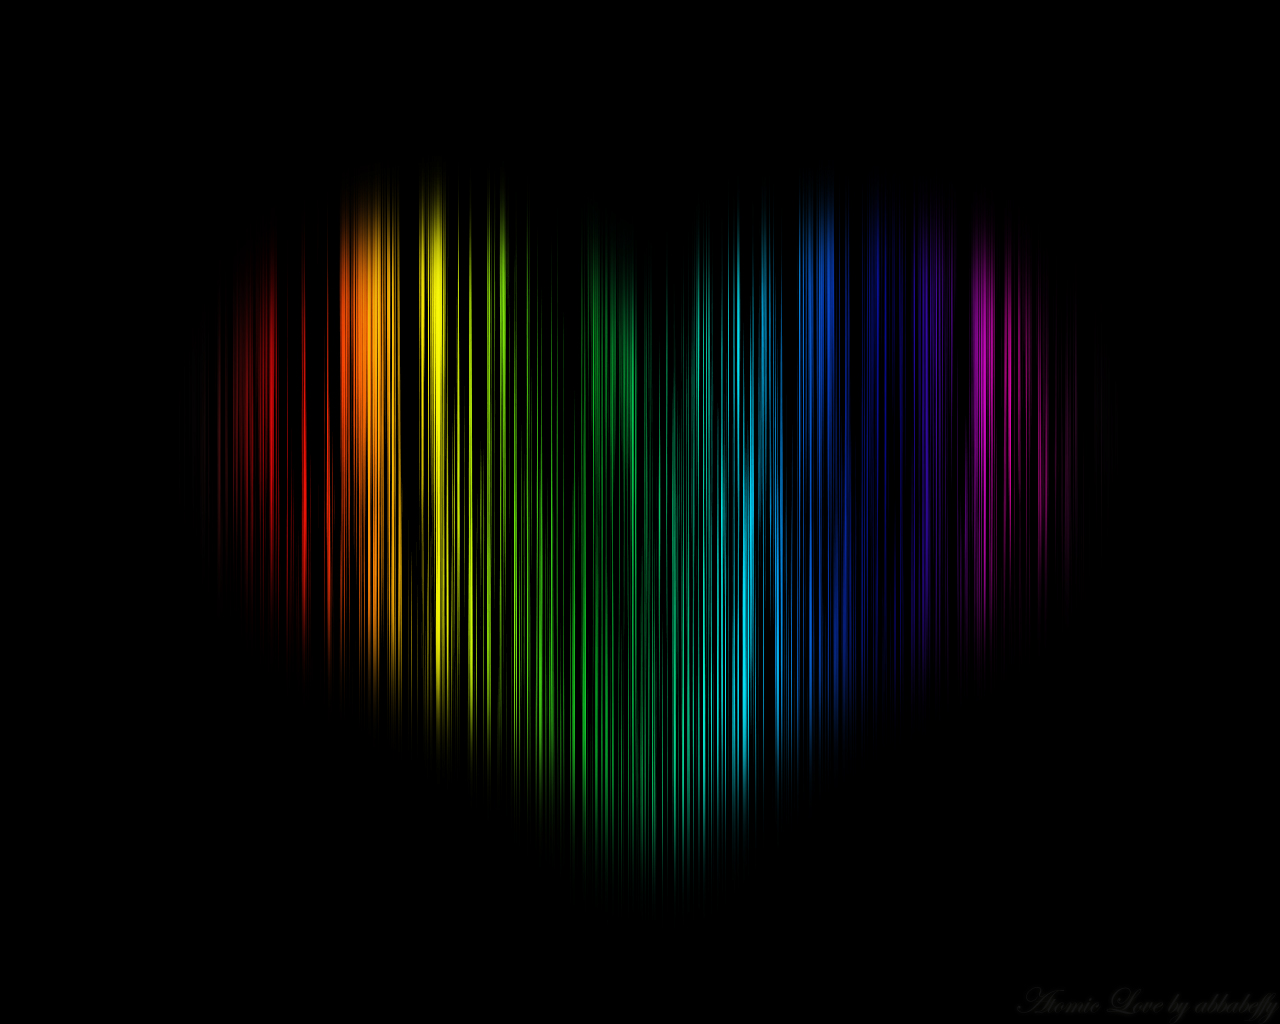 Atomic Colorful Love Wallpapers HD Wallpapers 1280x1024